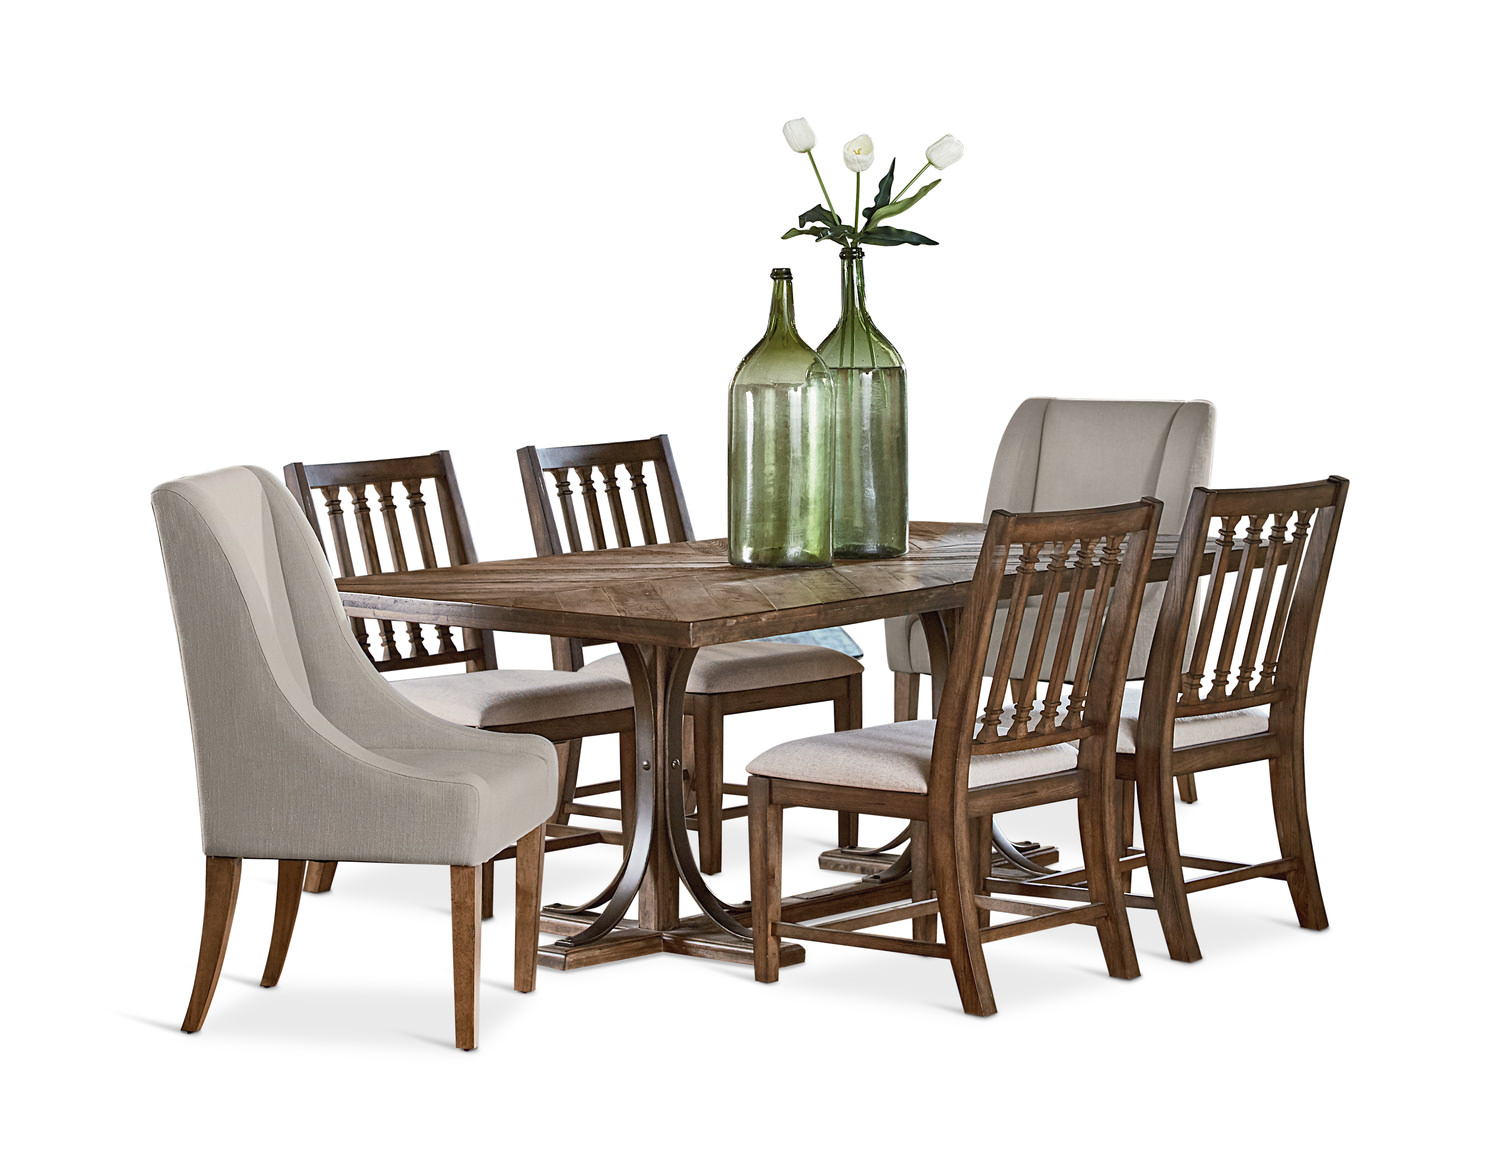 sc 1 st  HOM Furniture & Trestle Dining Table With 4 Revival Side And | HOM Furniture